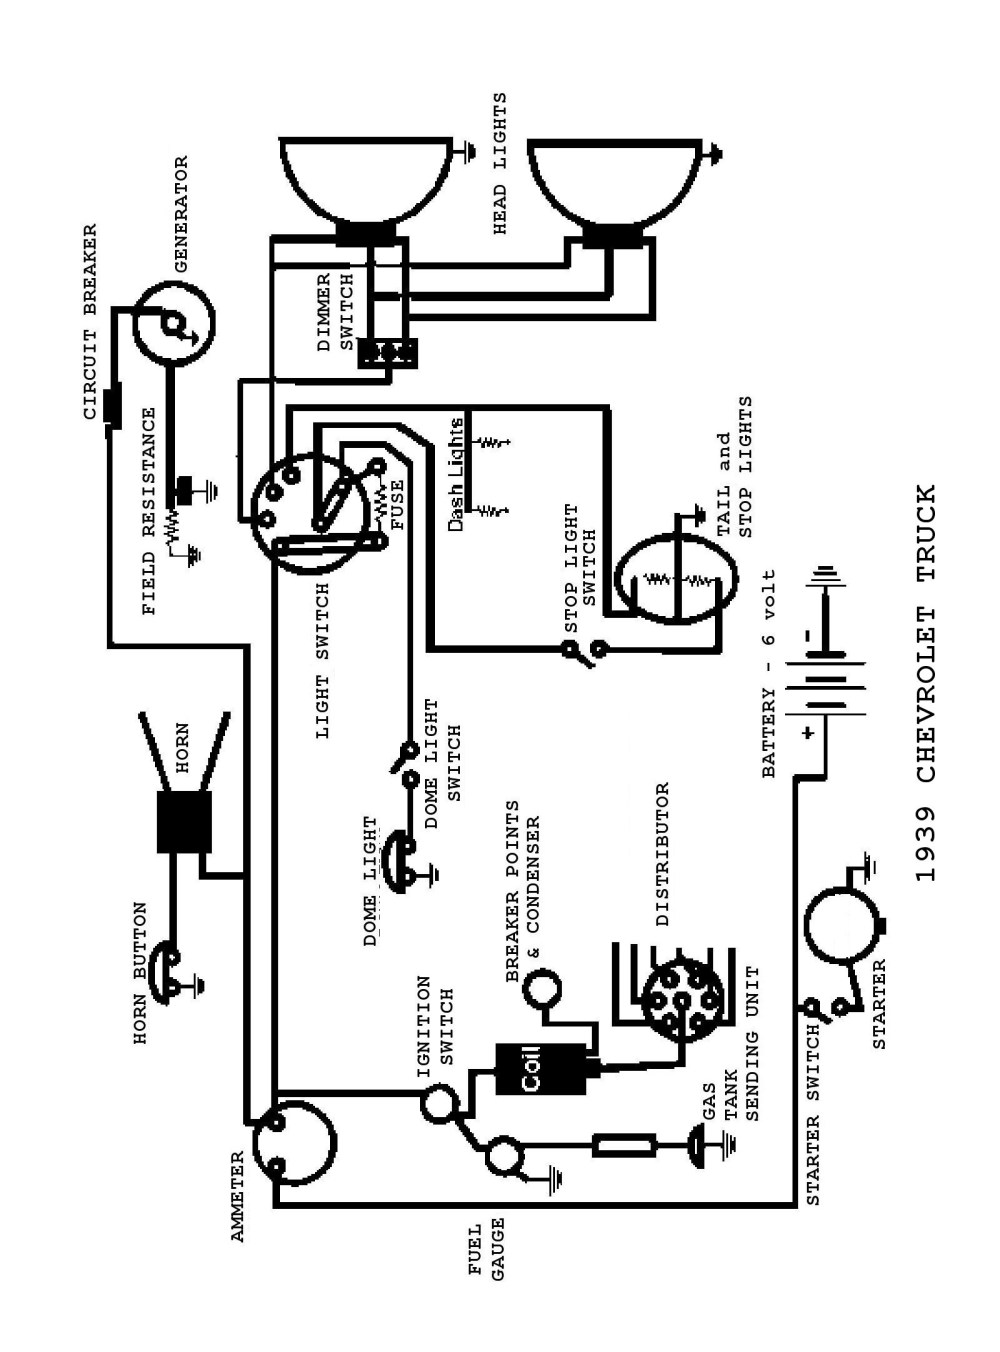 medium resolution of 2001 international 4700 headlight wiring diagram wiring library rh 81 evitta de 2001 international 4700 alternator wiring diagram 2001 4700 international